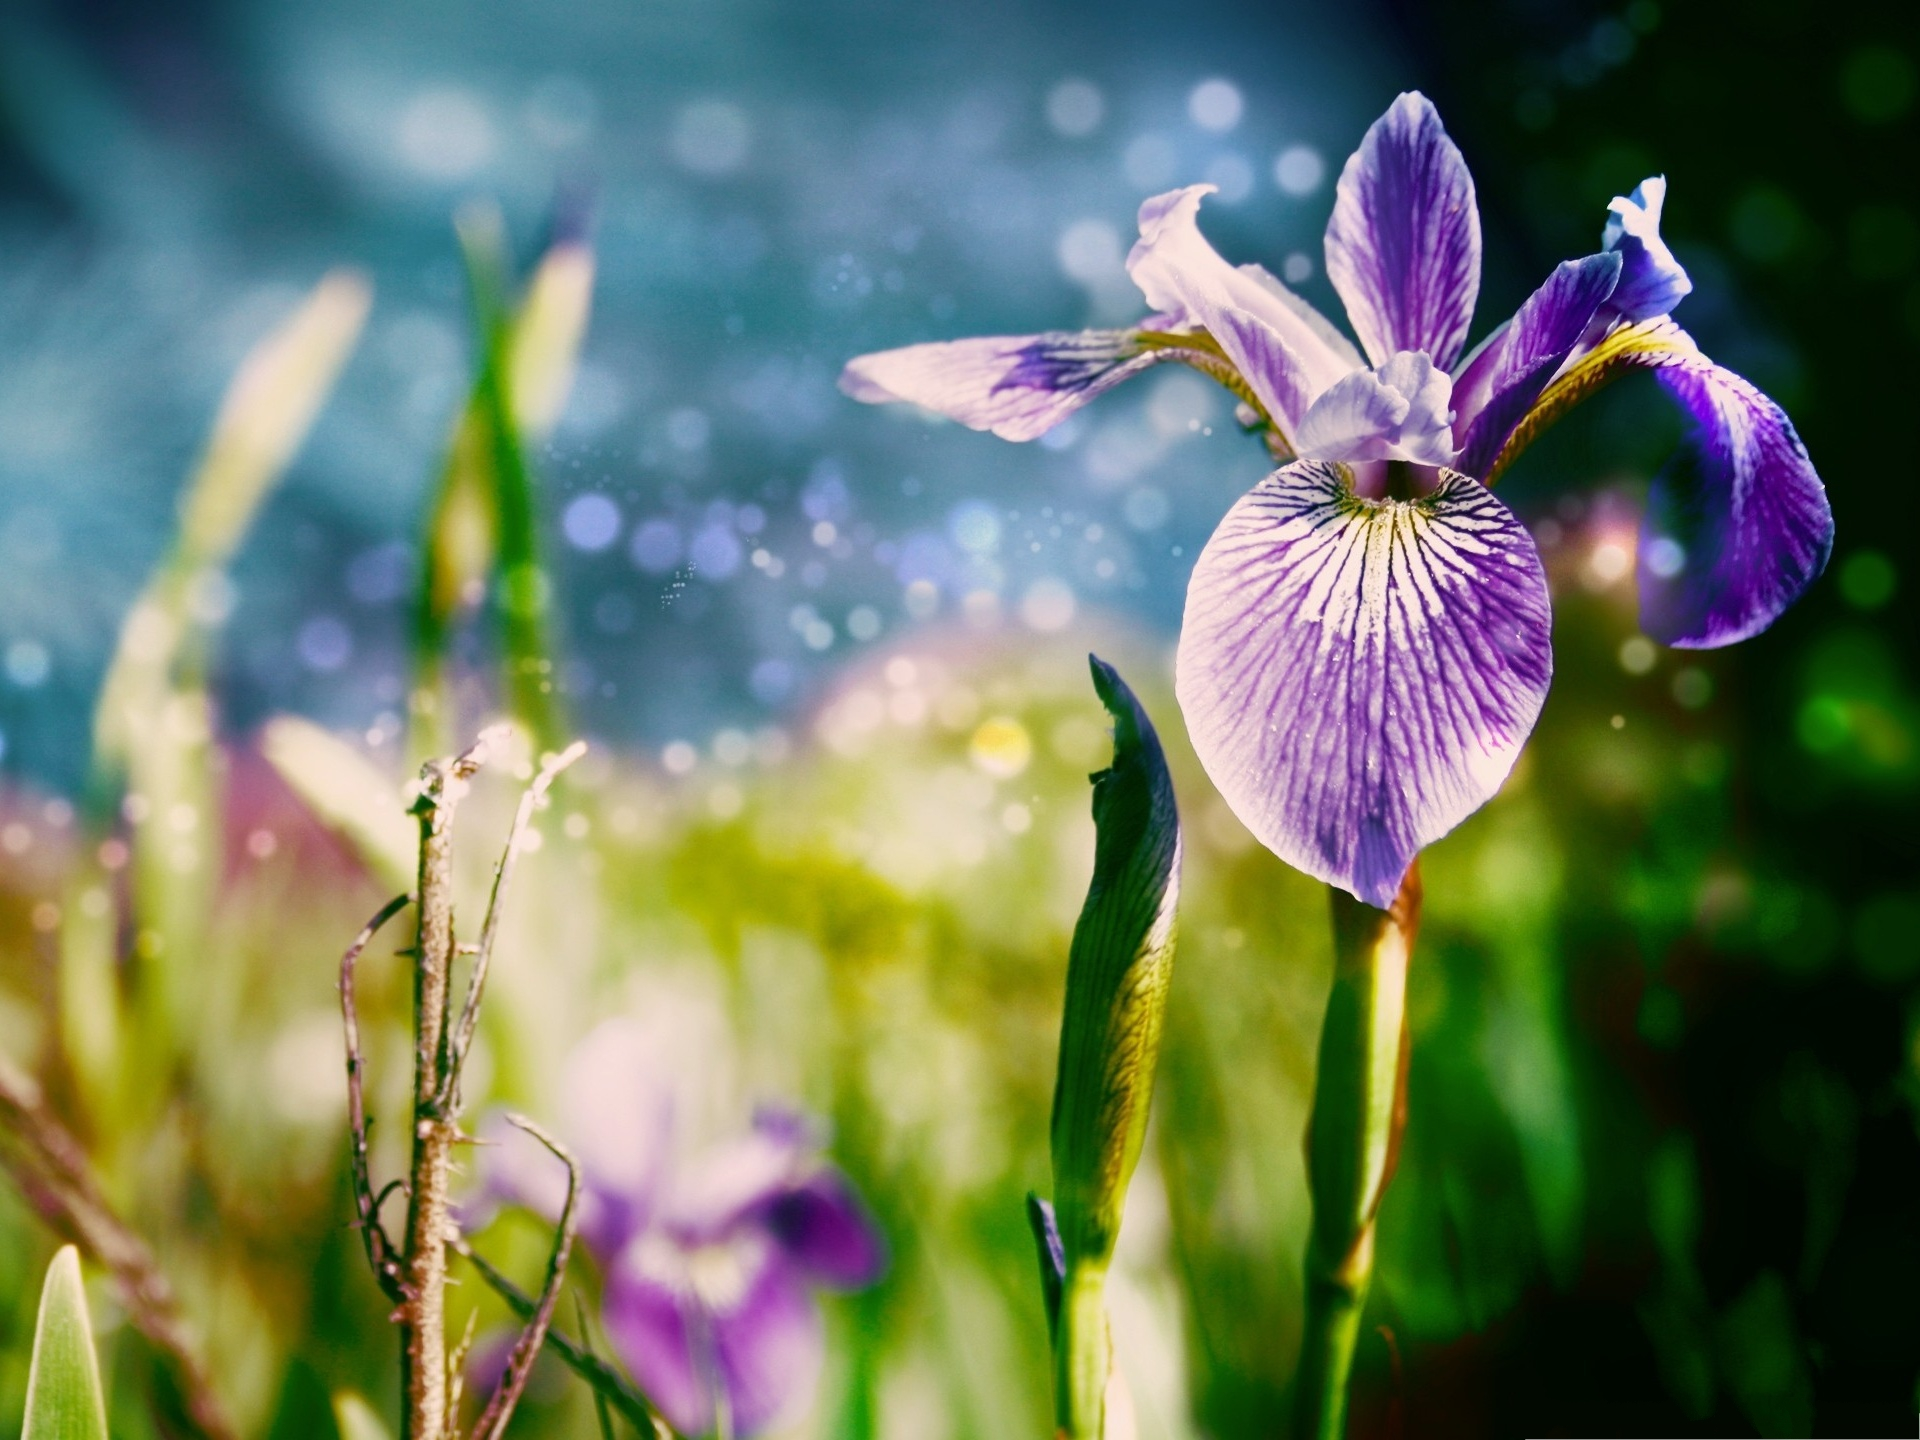 magic flower in blooming - photo #21